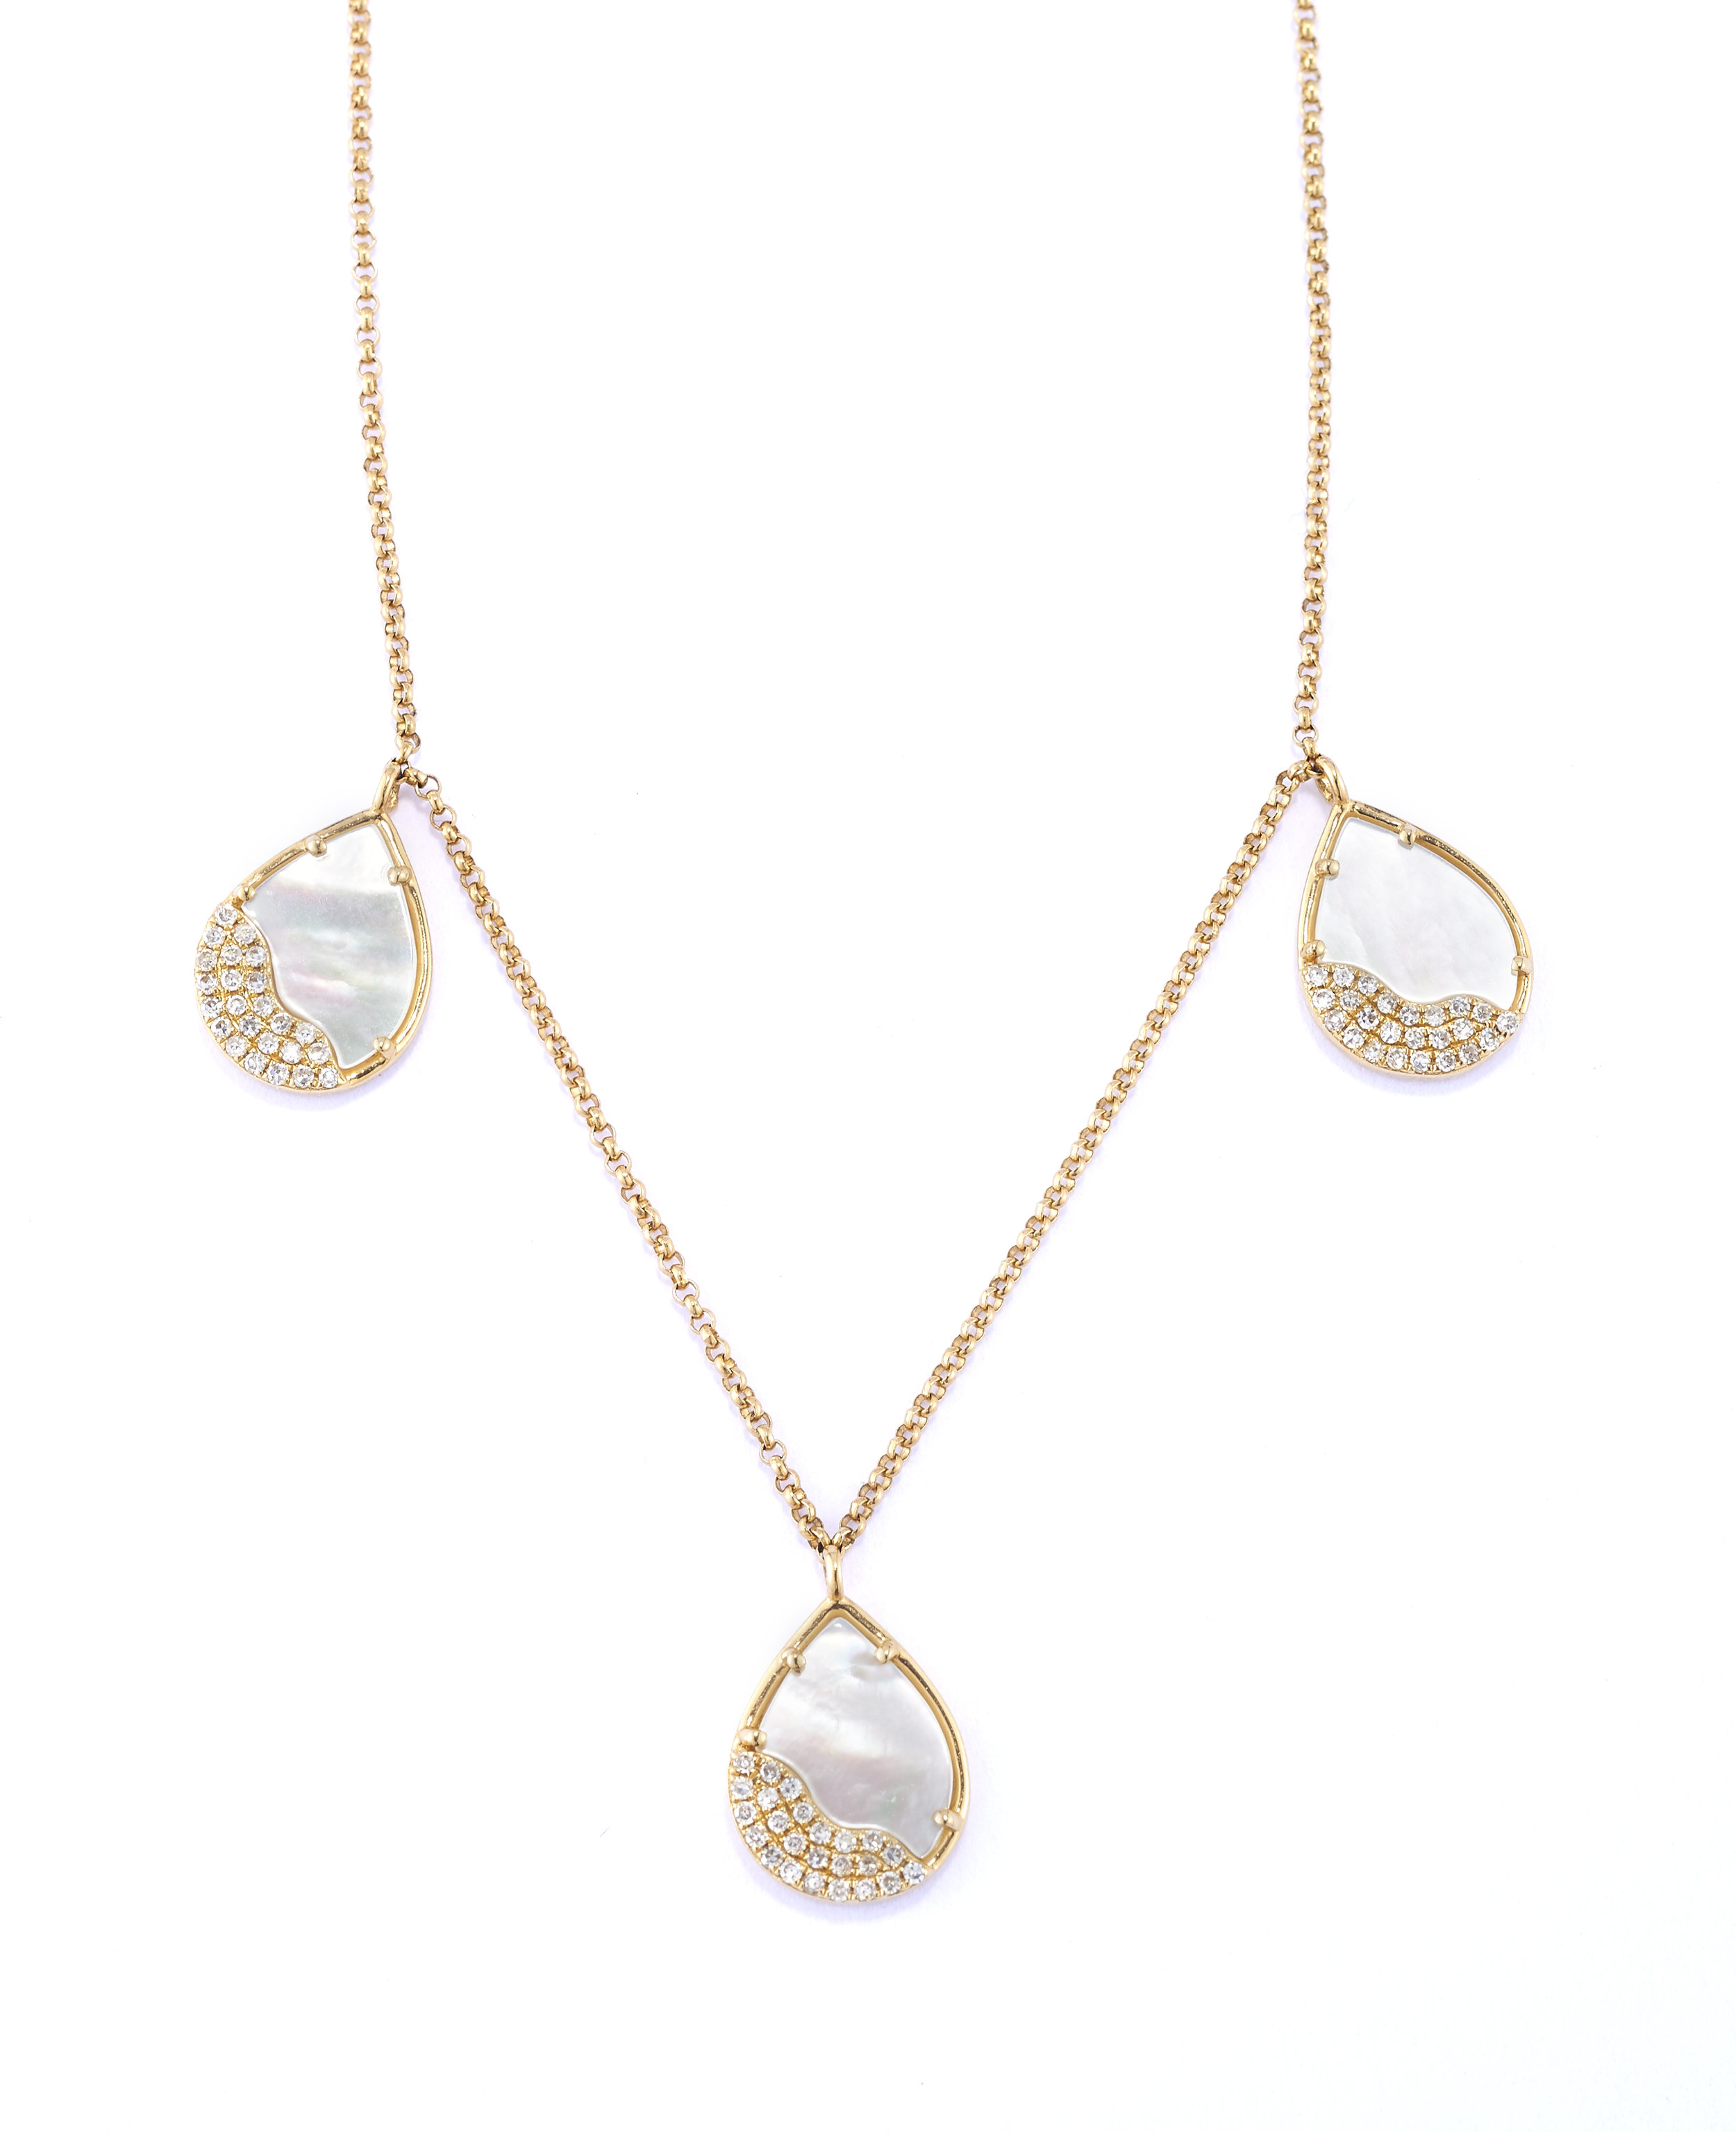 Mia Luna Petite Drop Trio - A sweet addition to the Mia Luna collection, three petite drops look gorgeous alone or layered hanging from their delicate chain. A masterful interpretation of the classic Mia Luna shape by PATRICIA ROBALINO.